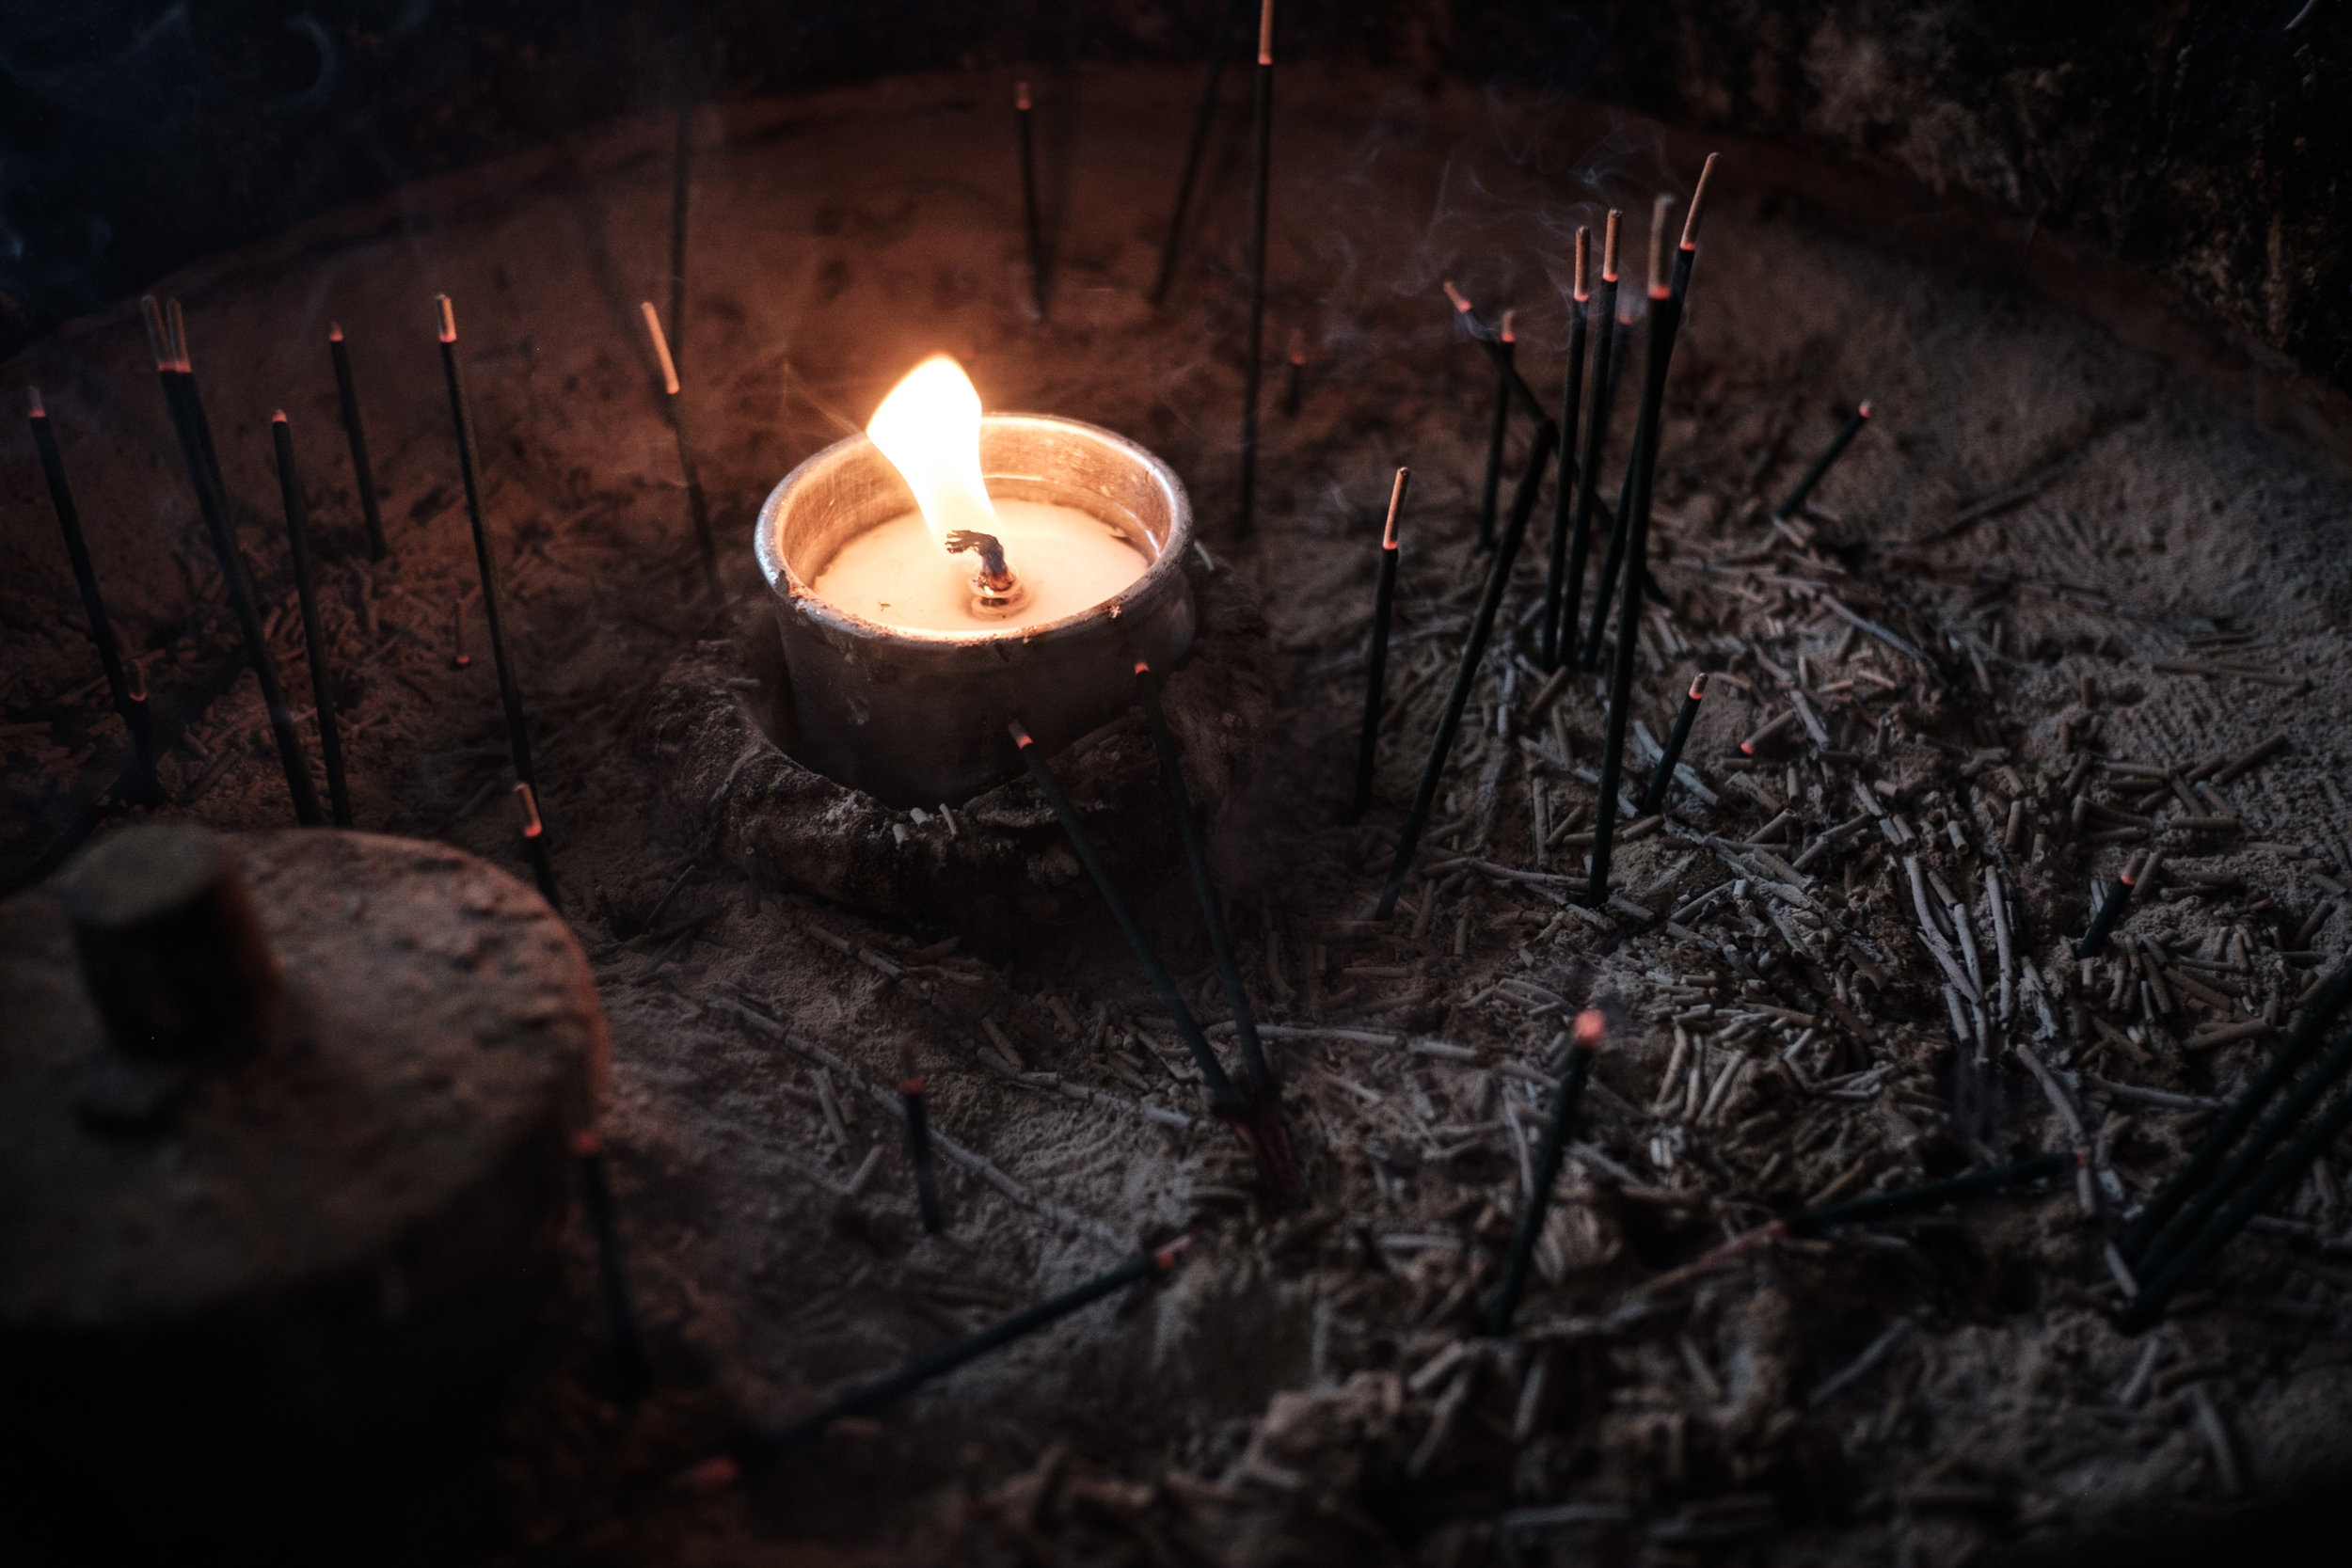 Restorative Retreat for Winter Solstice - As we entered December, we prepared our bodies and minds to celebrate and embrace the new energy shift, at 42 Acres, London.